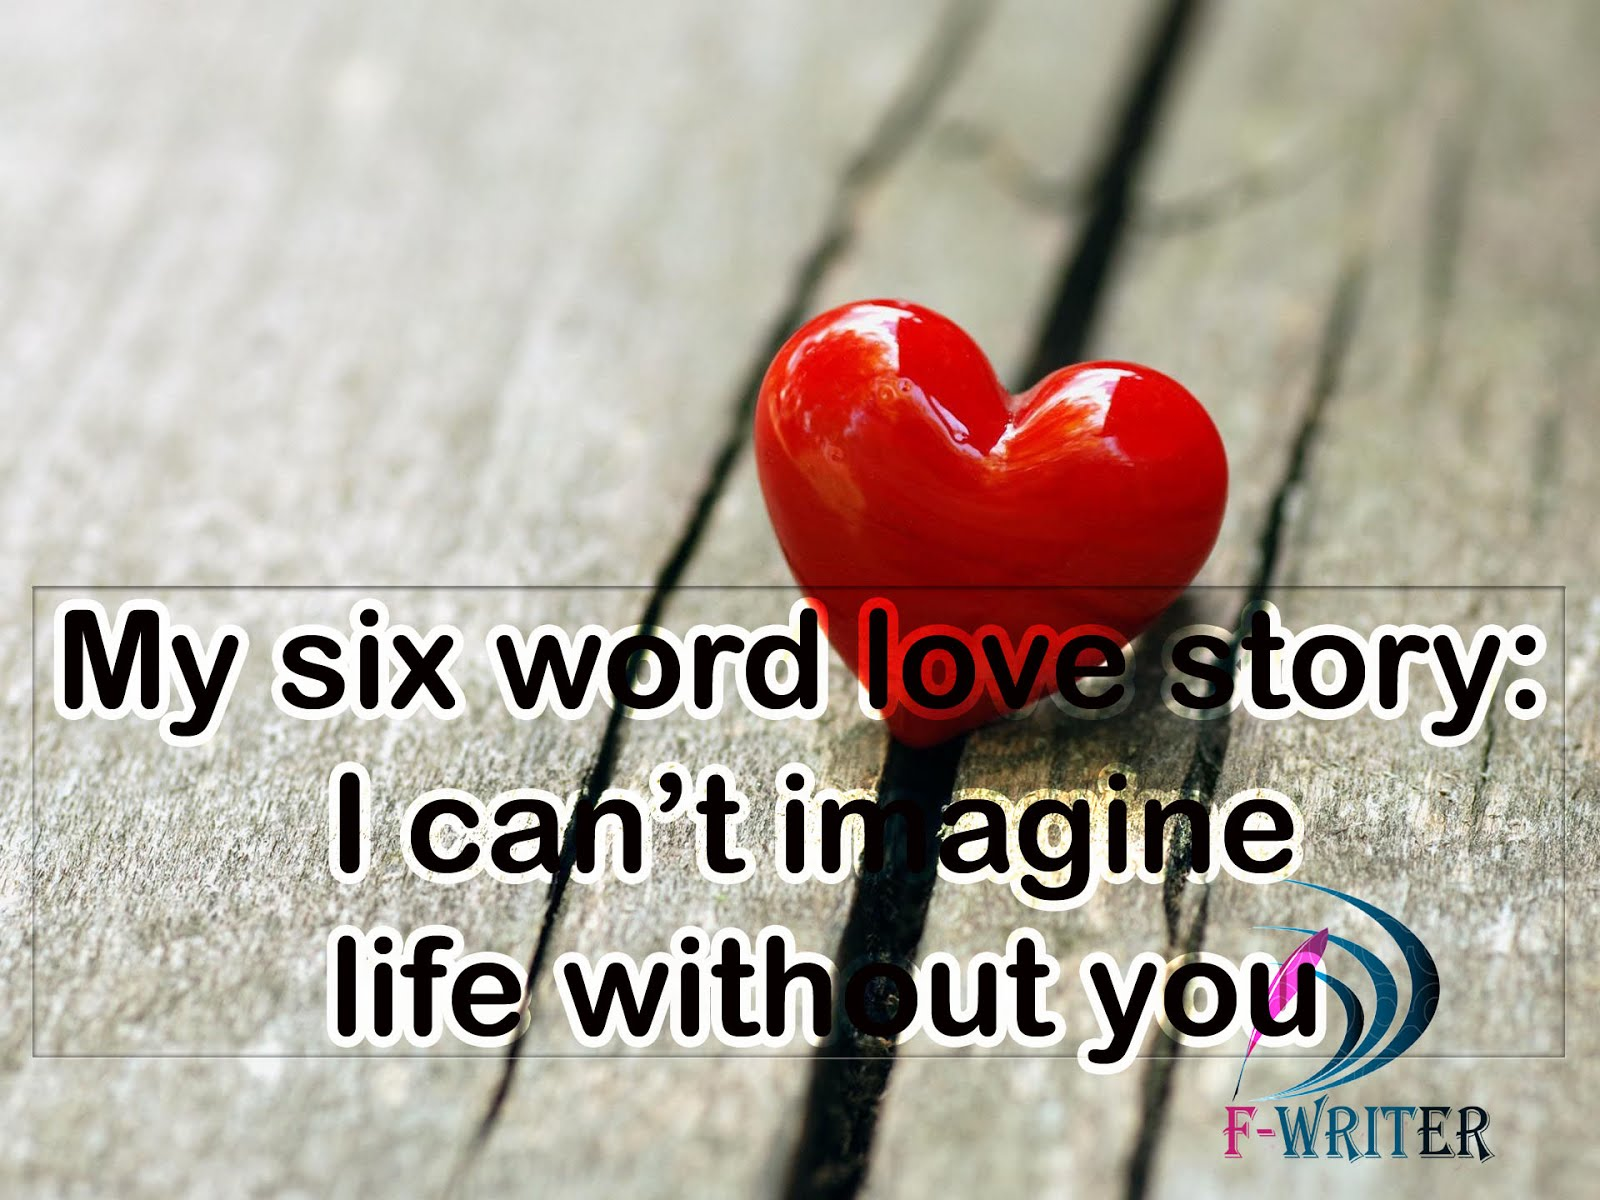 Romantic love quotes for you: 30 Famous Short Love Quotes